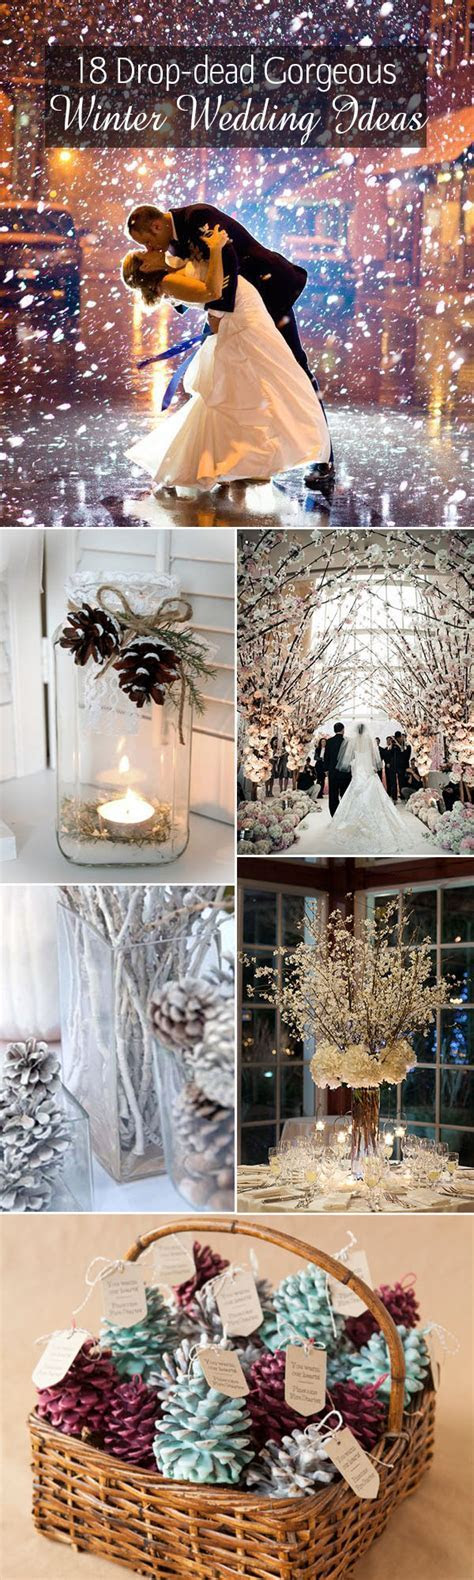 18 Drop Dead Gorgeous Winter Wedding Ideas For 2015